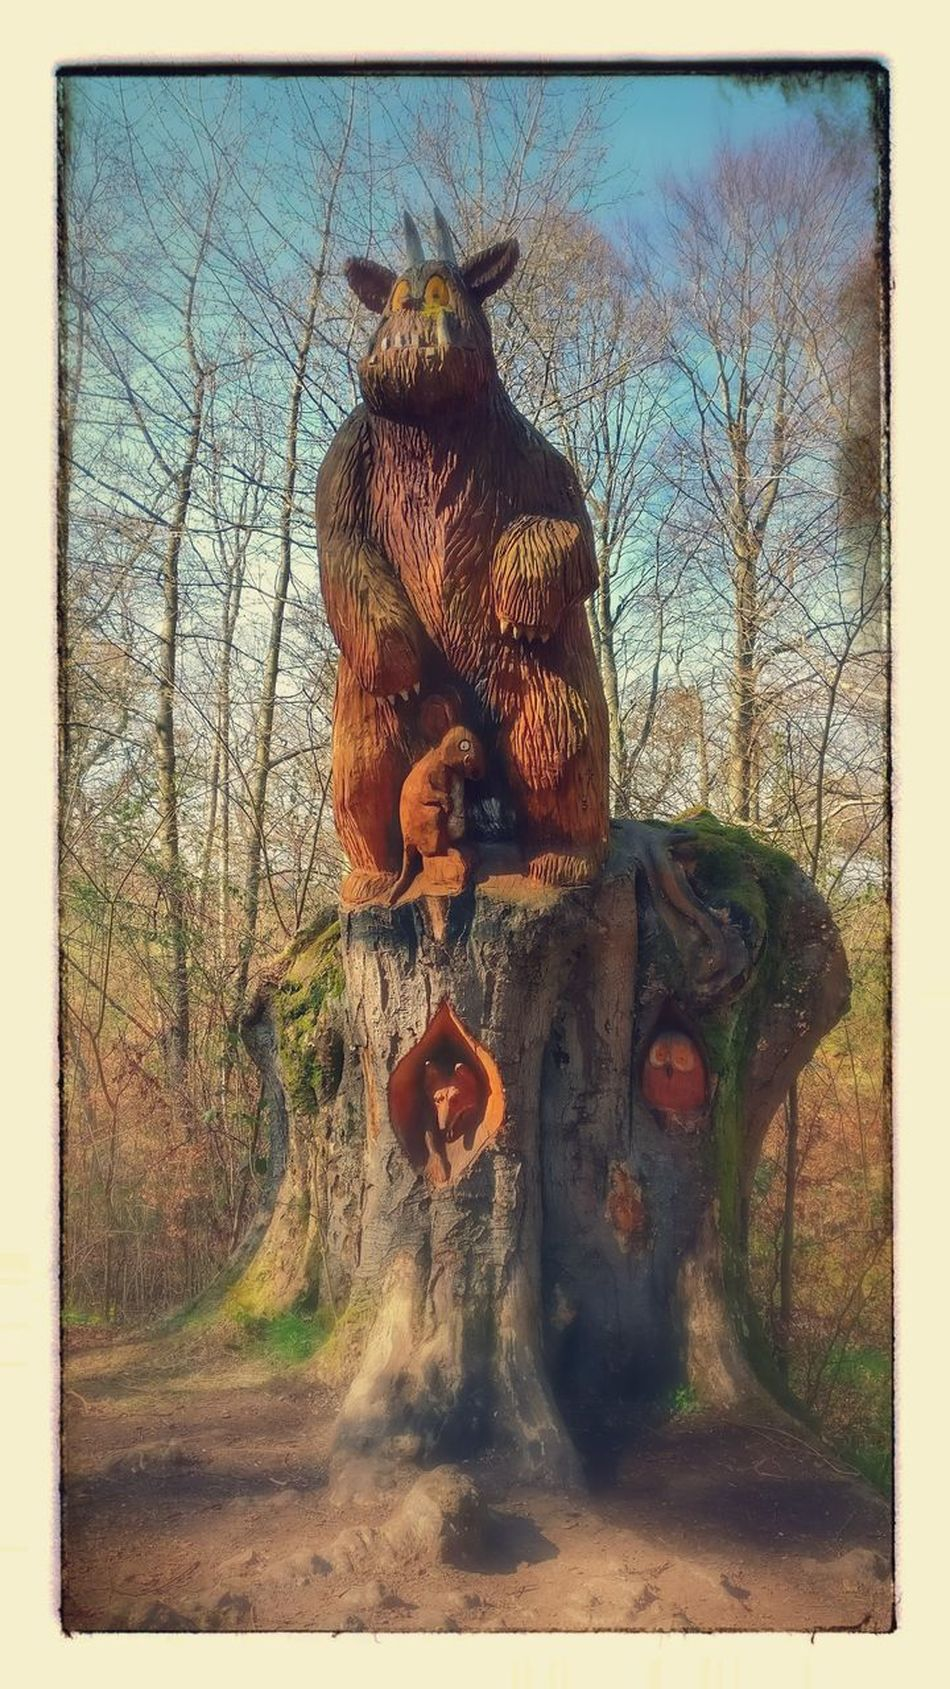 No People Statue Gruffalo Hunt Gruffalo Highlands Scottish Scotland 💕 Scotlandsbeauty Full Frame Mammal Animals In The Wild Wood Carving Art Culloden Scottish Highlands Scotland Outdoors Statue